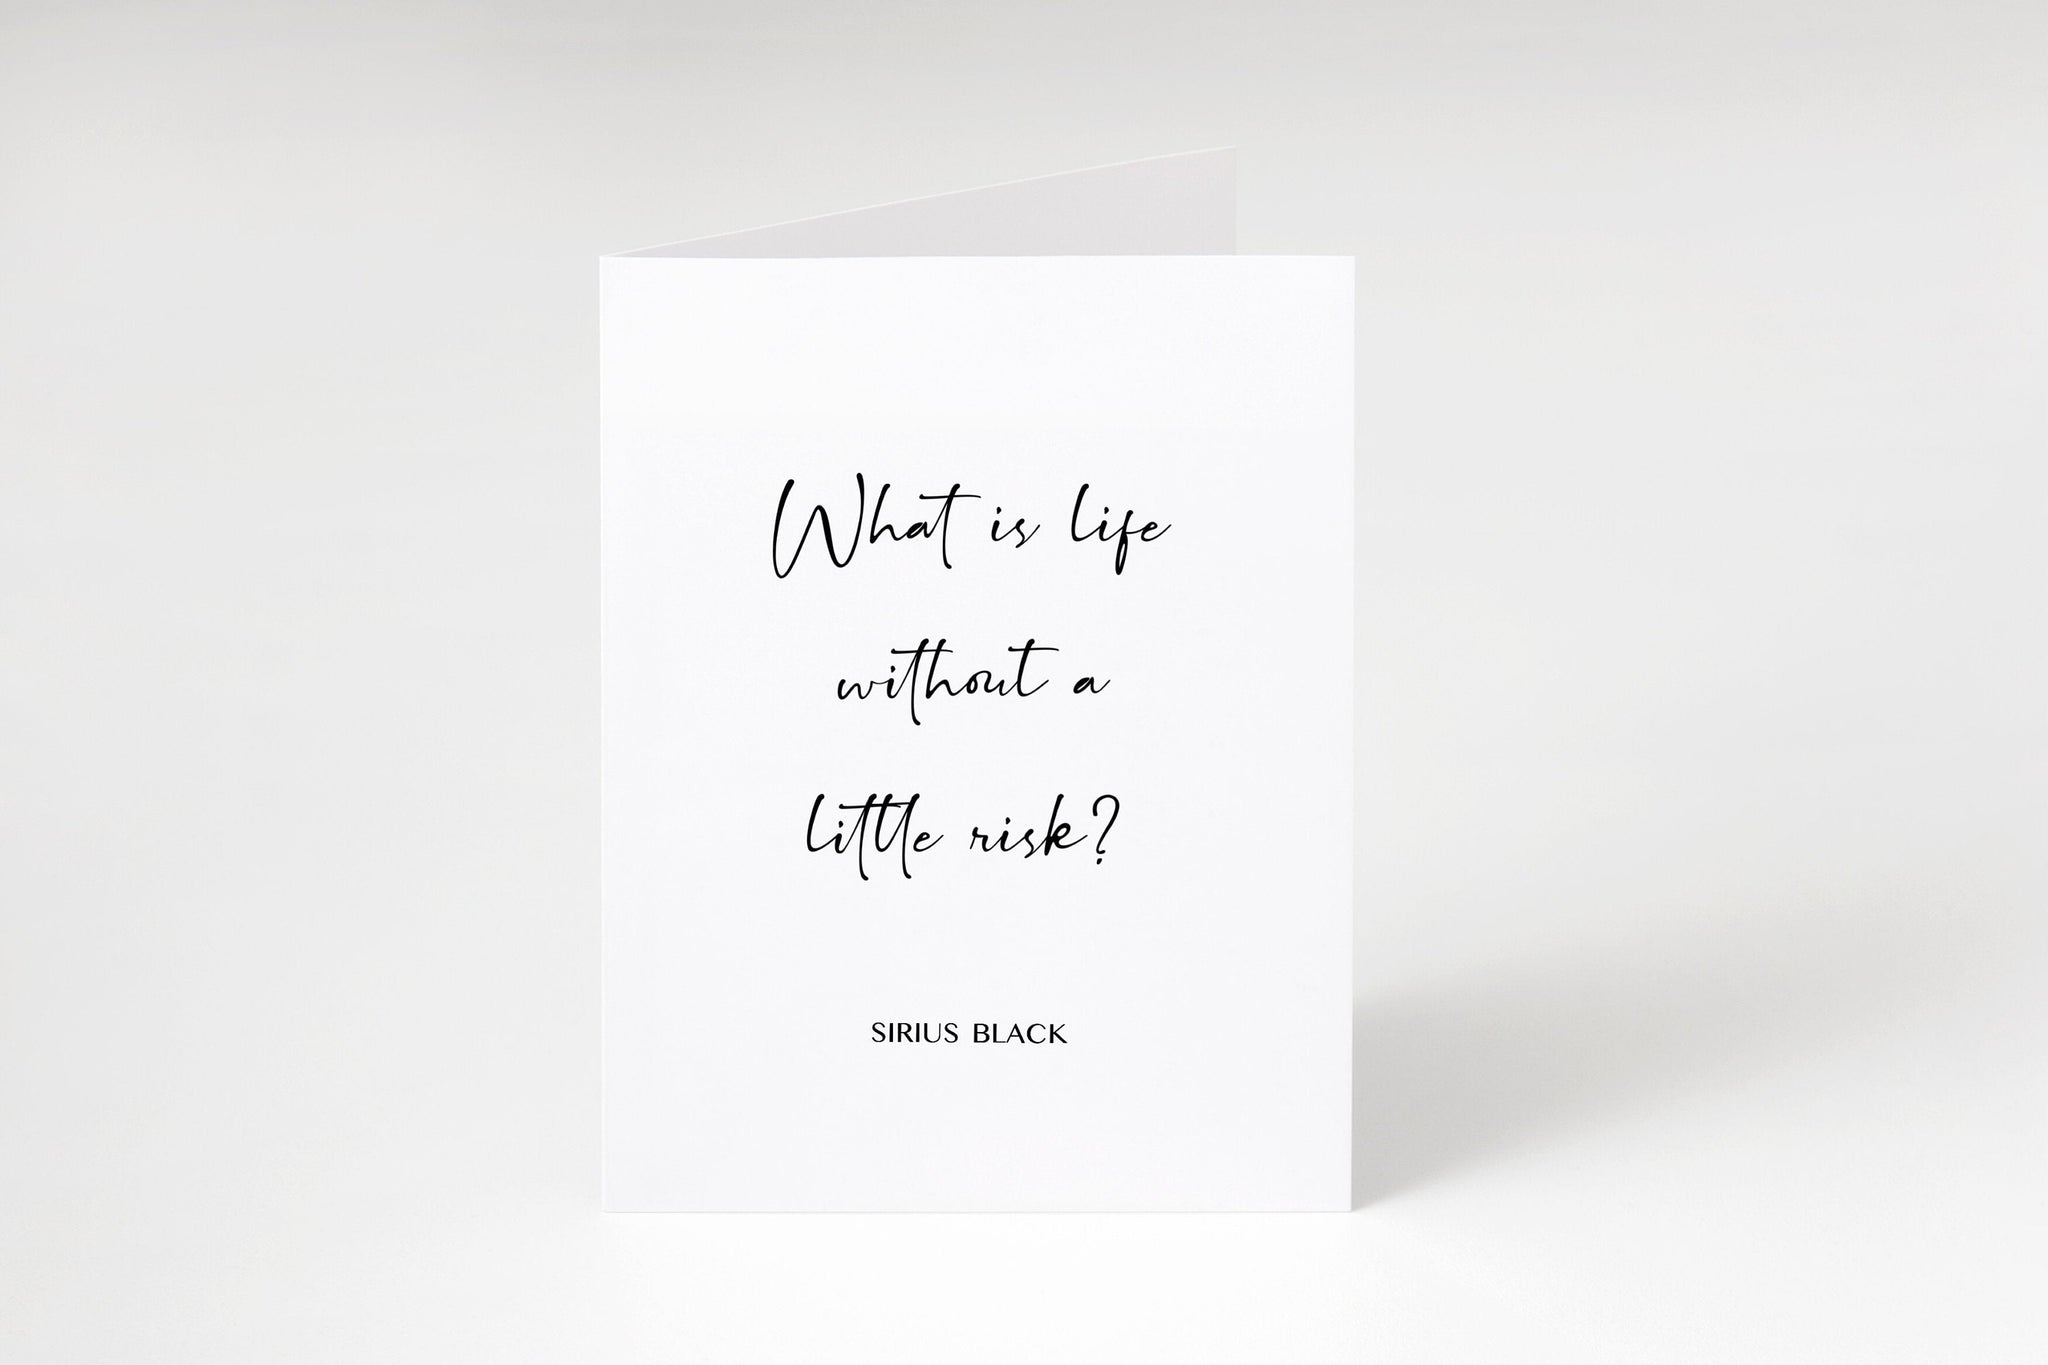 What is life without a little risk, Sirius Black greeting card, Sirius Black quote card, Harry Potter quote card, Harry Potter inspired